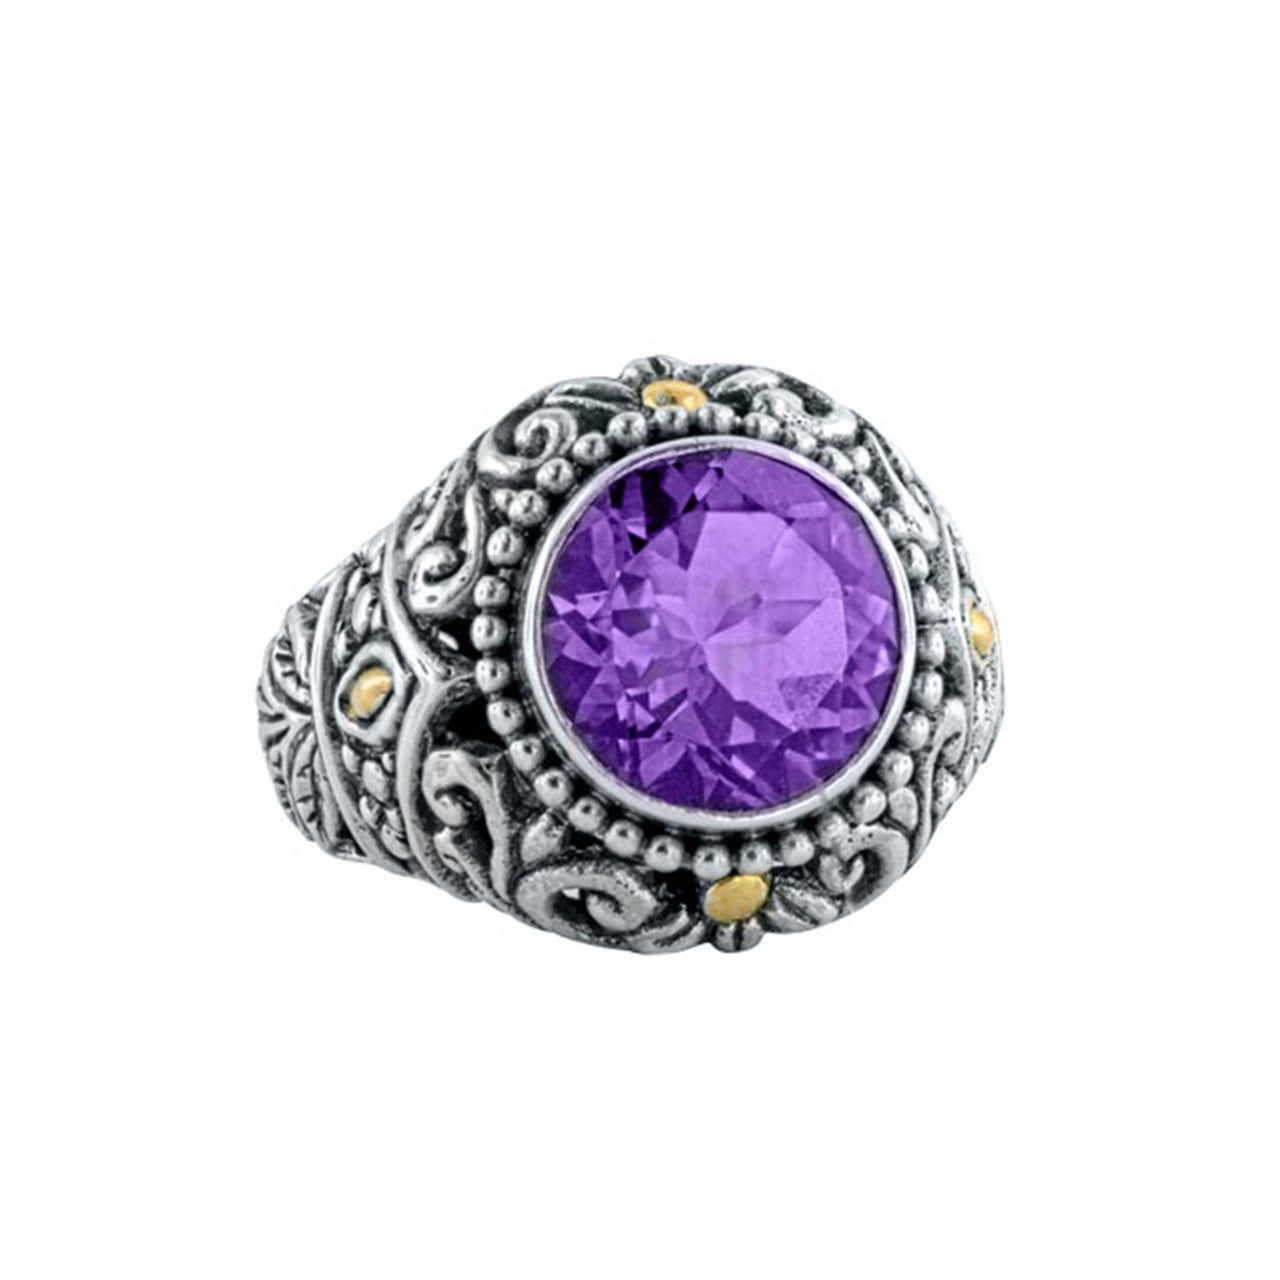 Amethyst Floral Filigree Ring